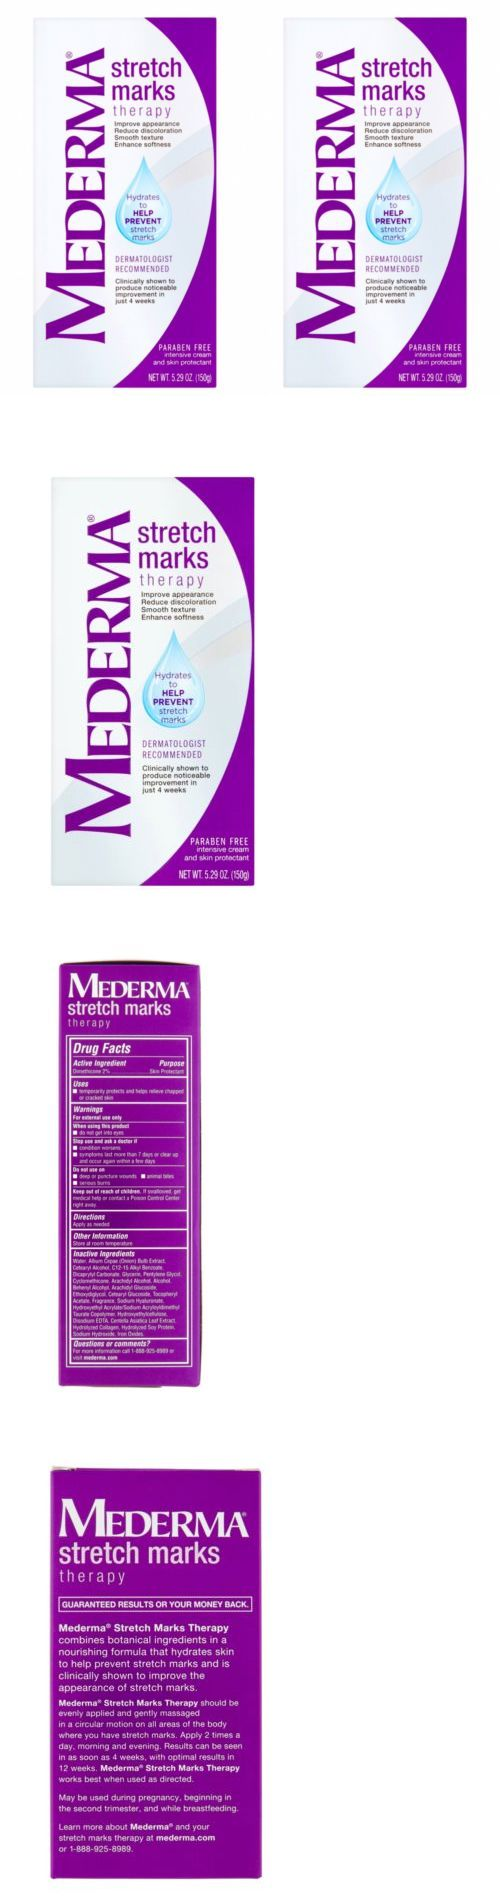 Scar and Stretch Mark Reducers: Mederma Stretch Marks Therapy Set Of 2 - 5.29Oz Each New Exp. 08 2018 -> BUY IT NOW ONLY: $44 on eBay!